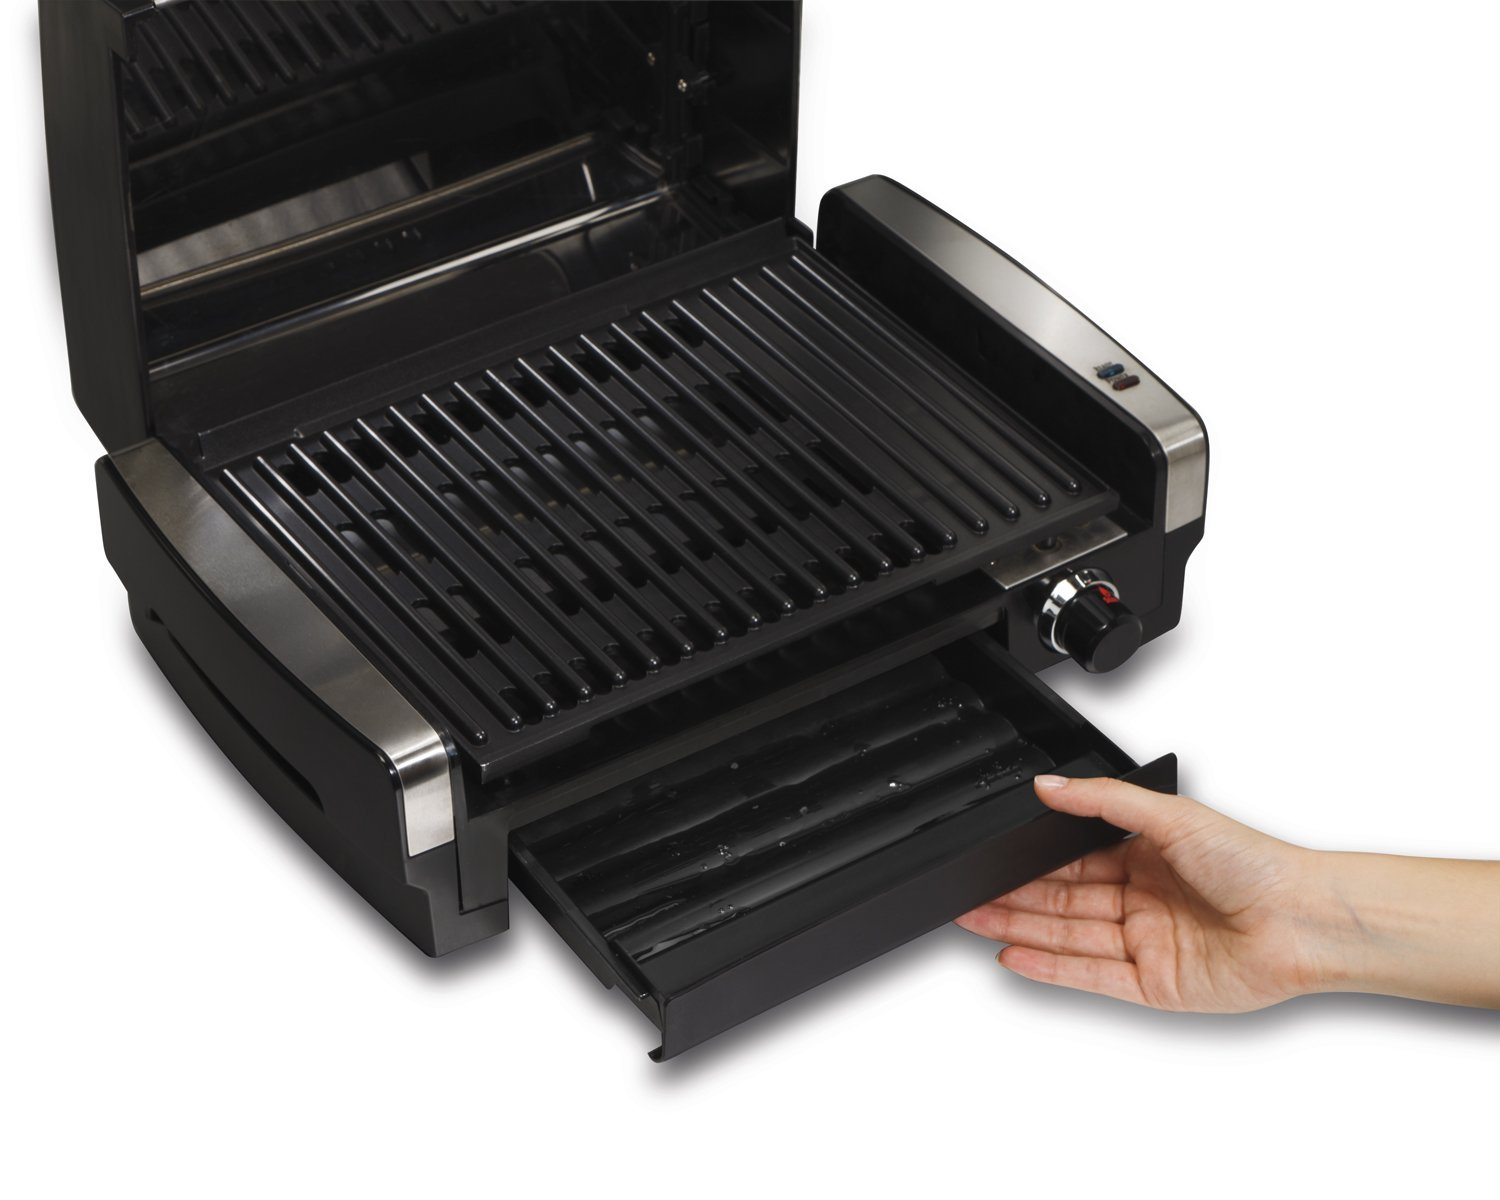 Hamilton Beach Indoor Grill - 25360 Searing Grill Review